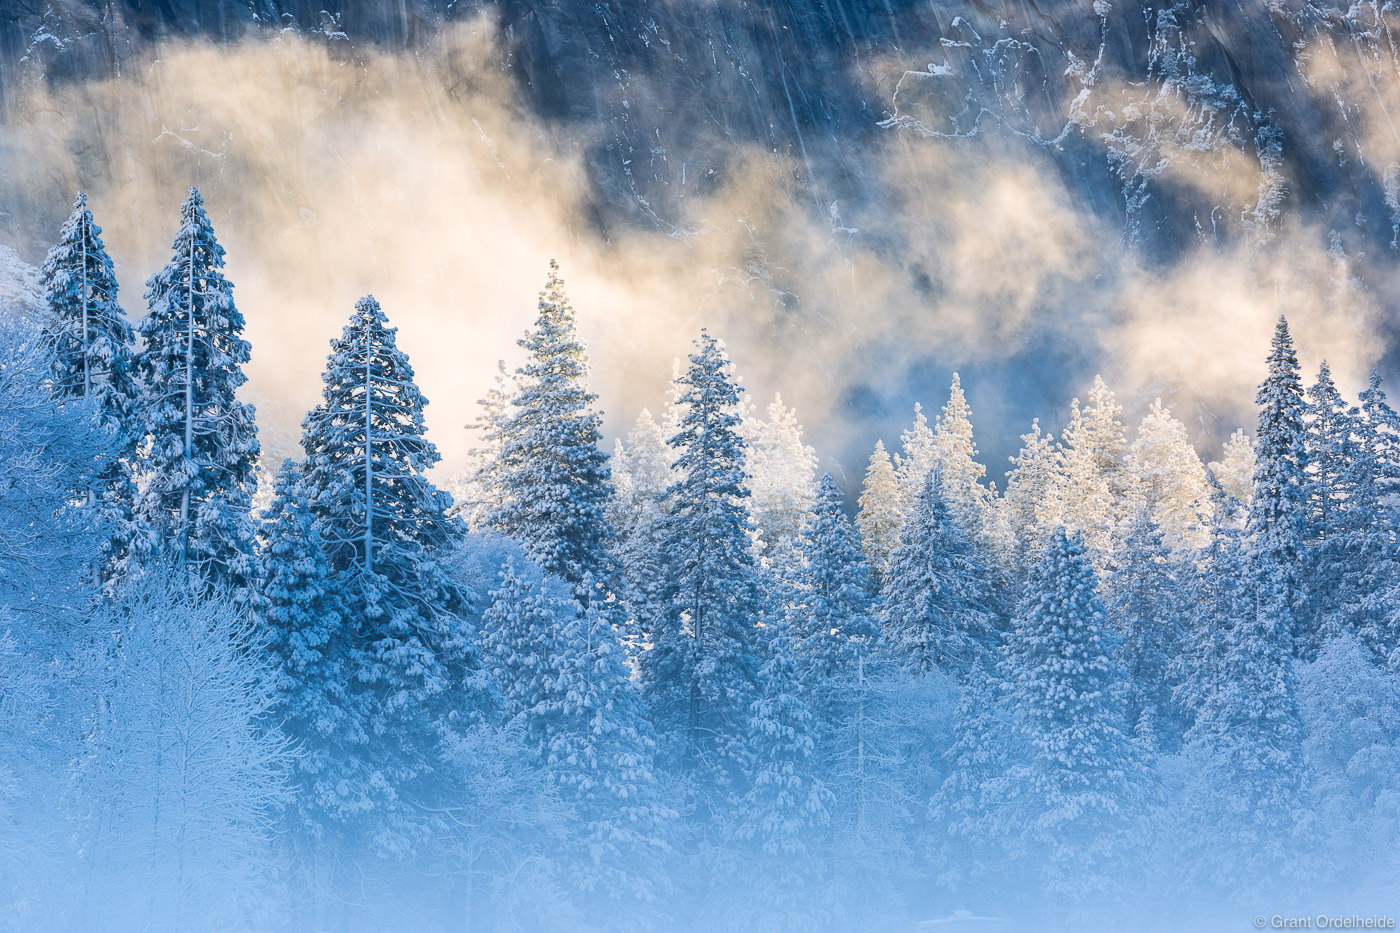 Early morning mist and light after a snowstorm in Yosemite Valley.